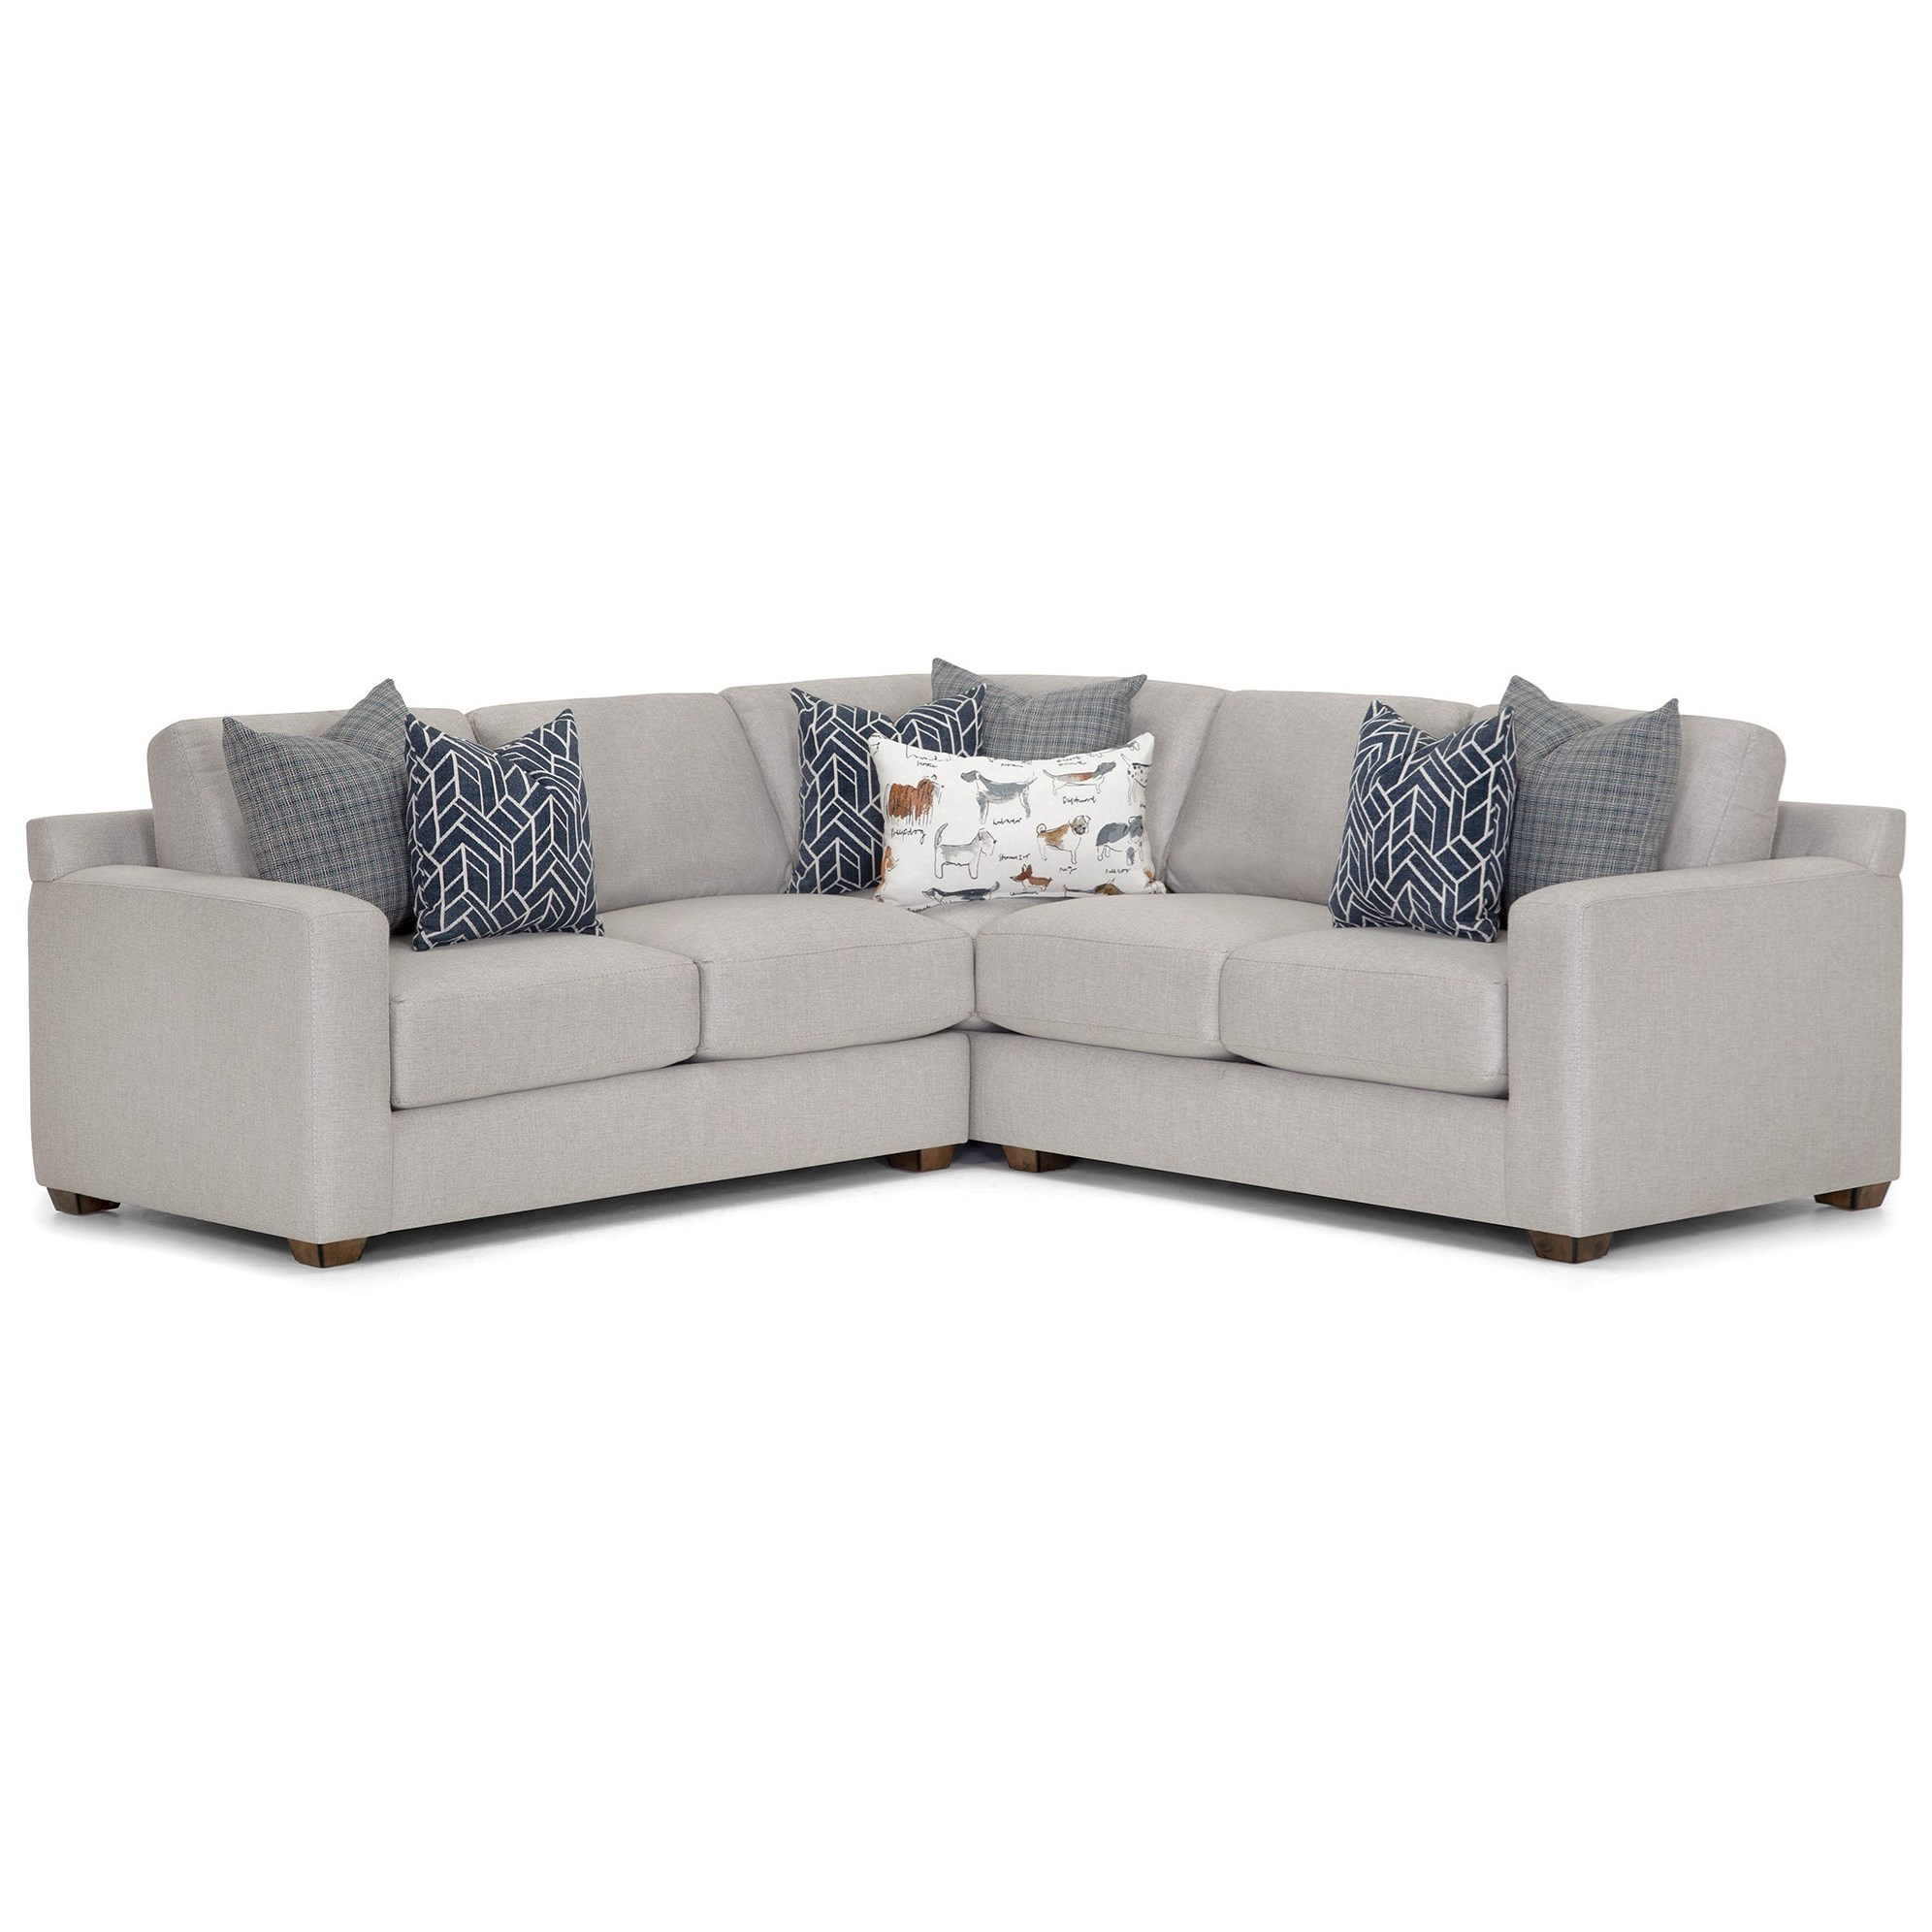 Oscar L-Shaped Sectional at Bennett's Furniture and Mattresses